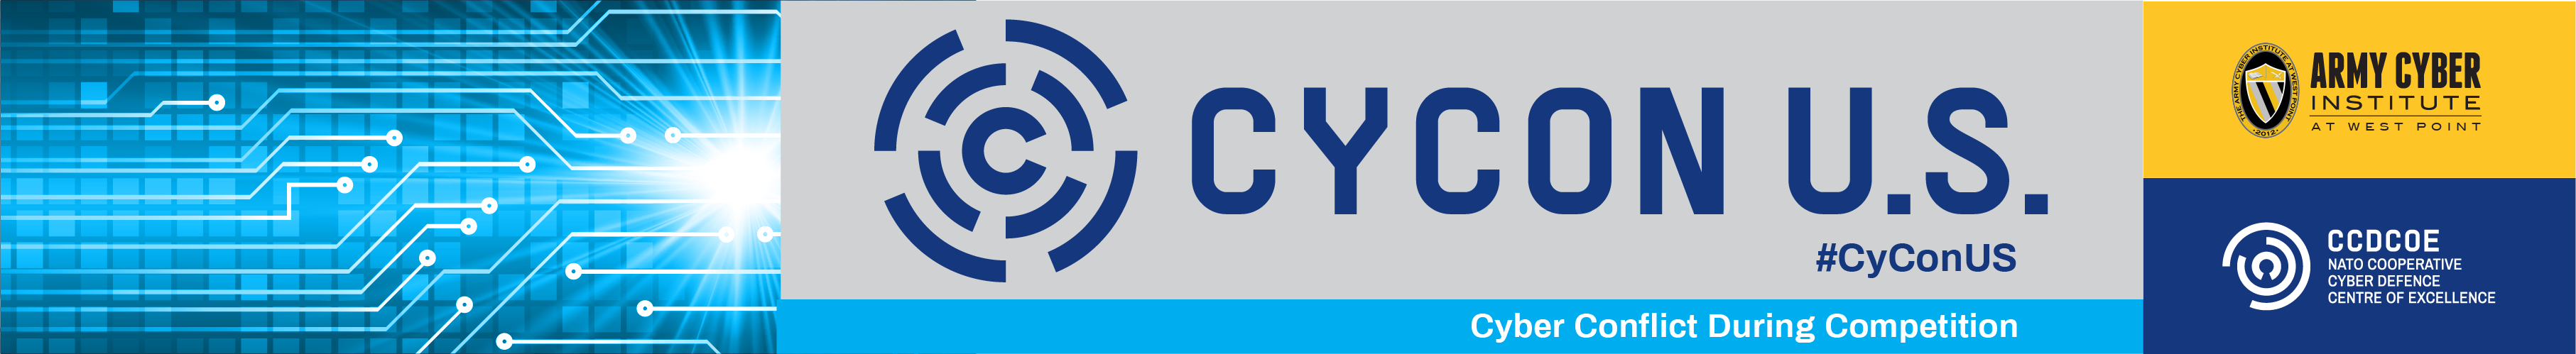 2018 International Conference on Cyber Conflict (CyCon U.S.)